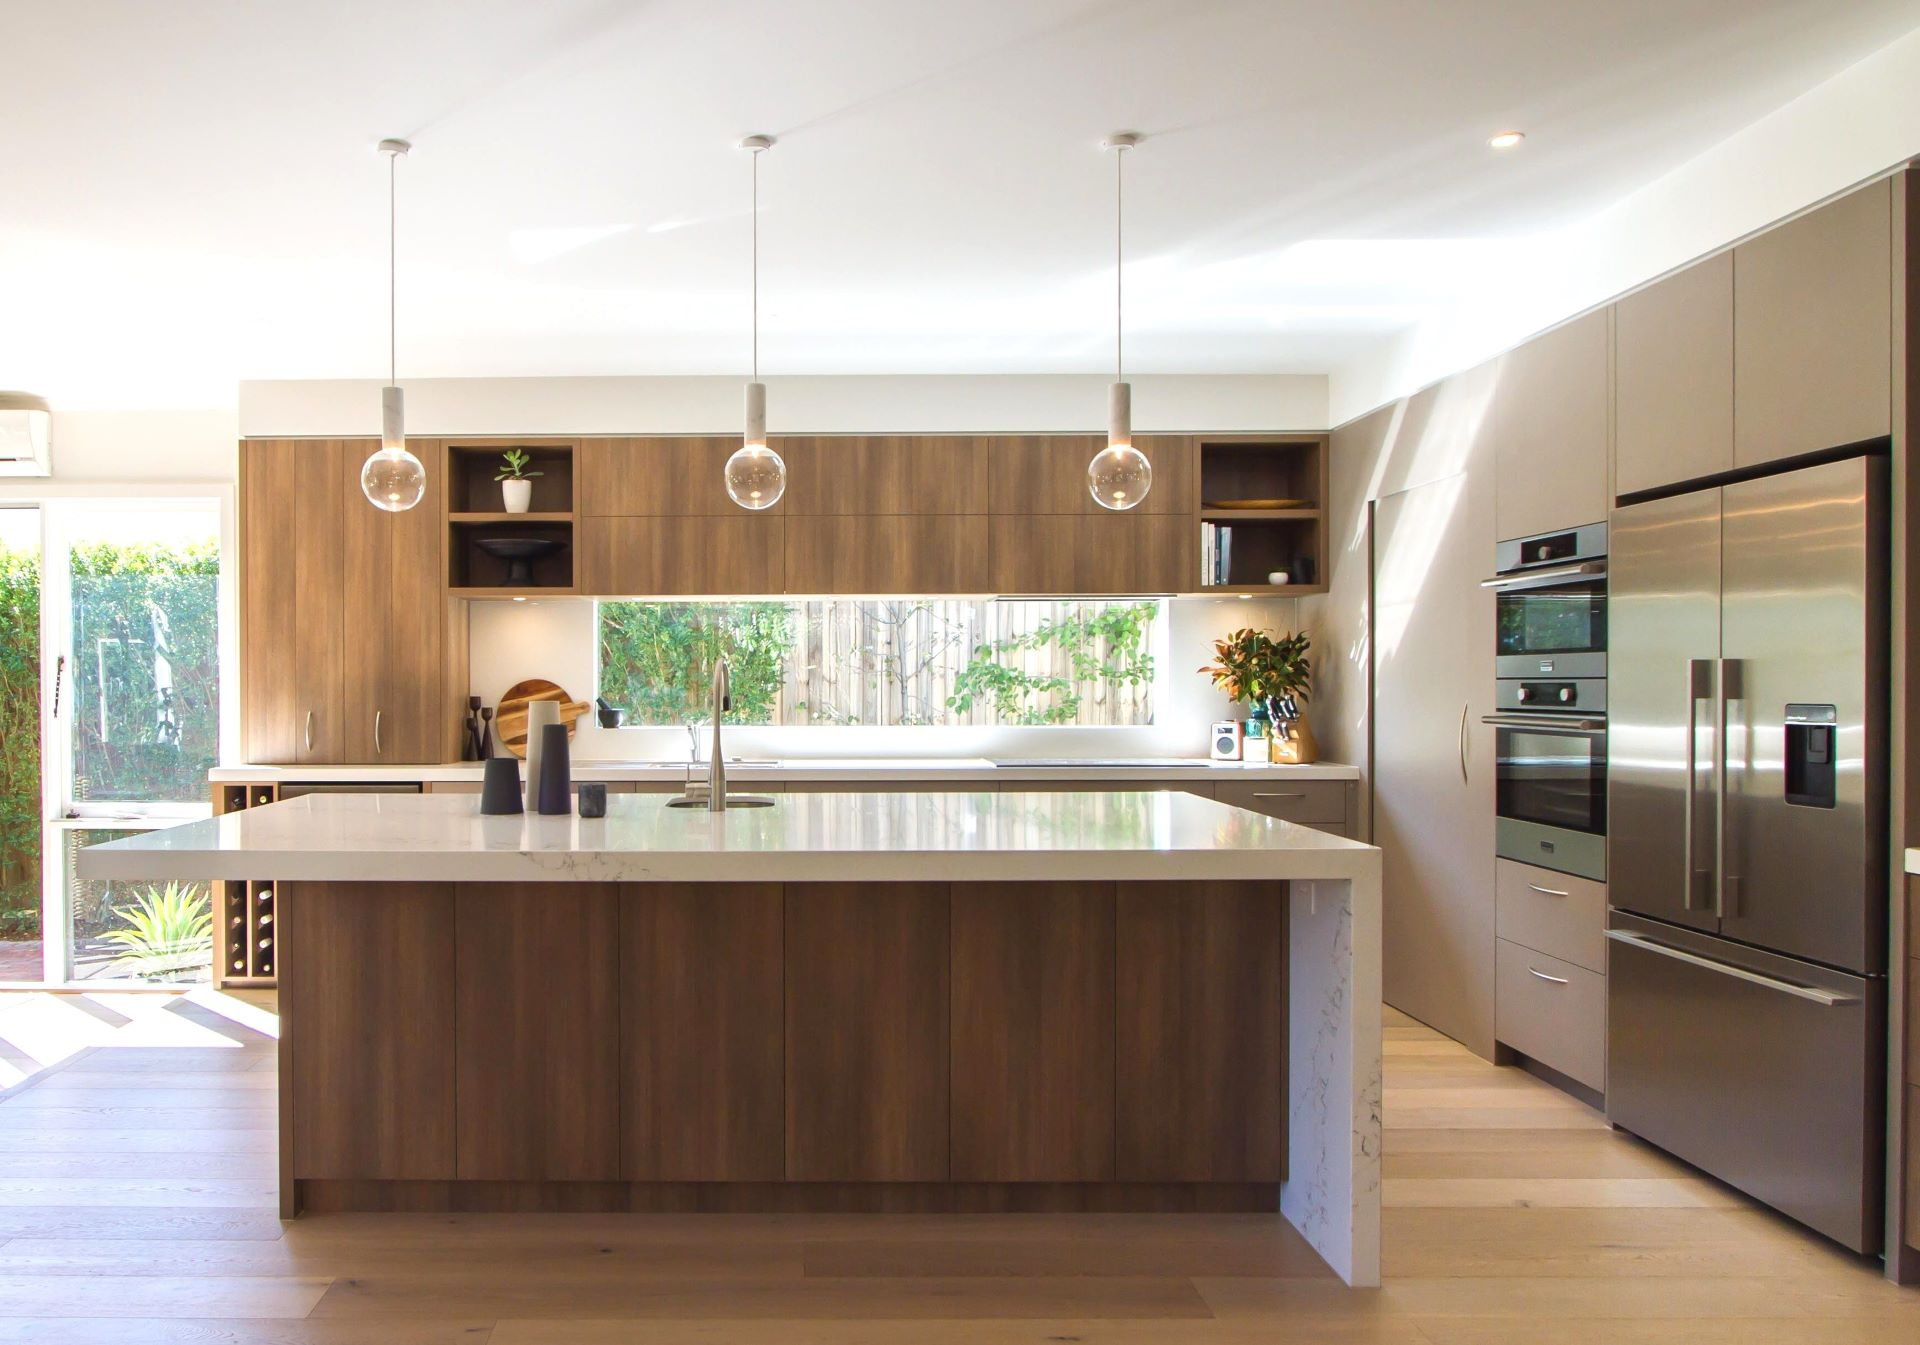 Mix of modern glass light, wooden flooring, wood cabinetry, and metallic kitchen appliances in Contemporary kitchen